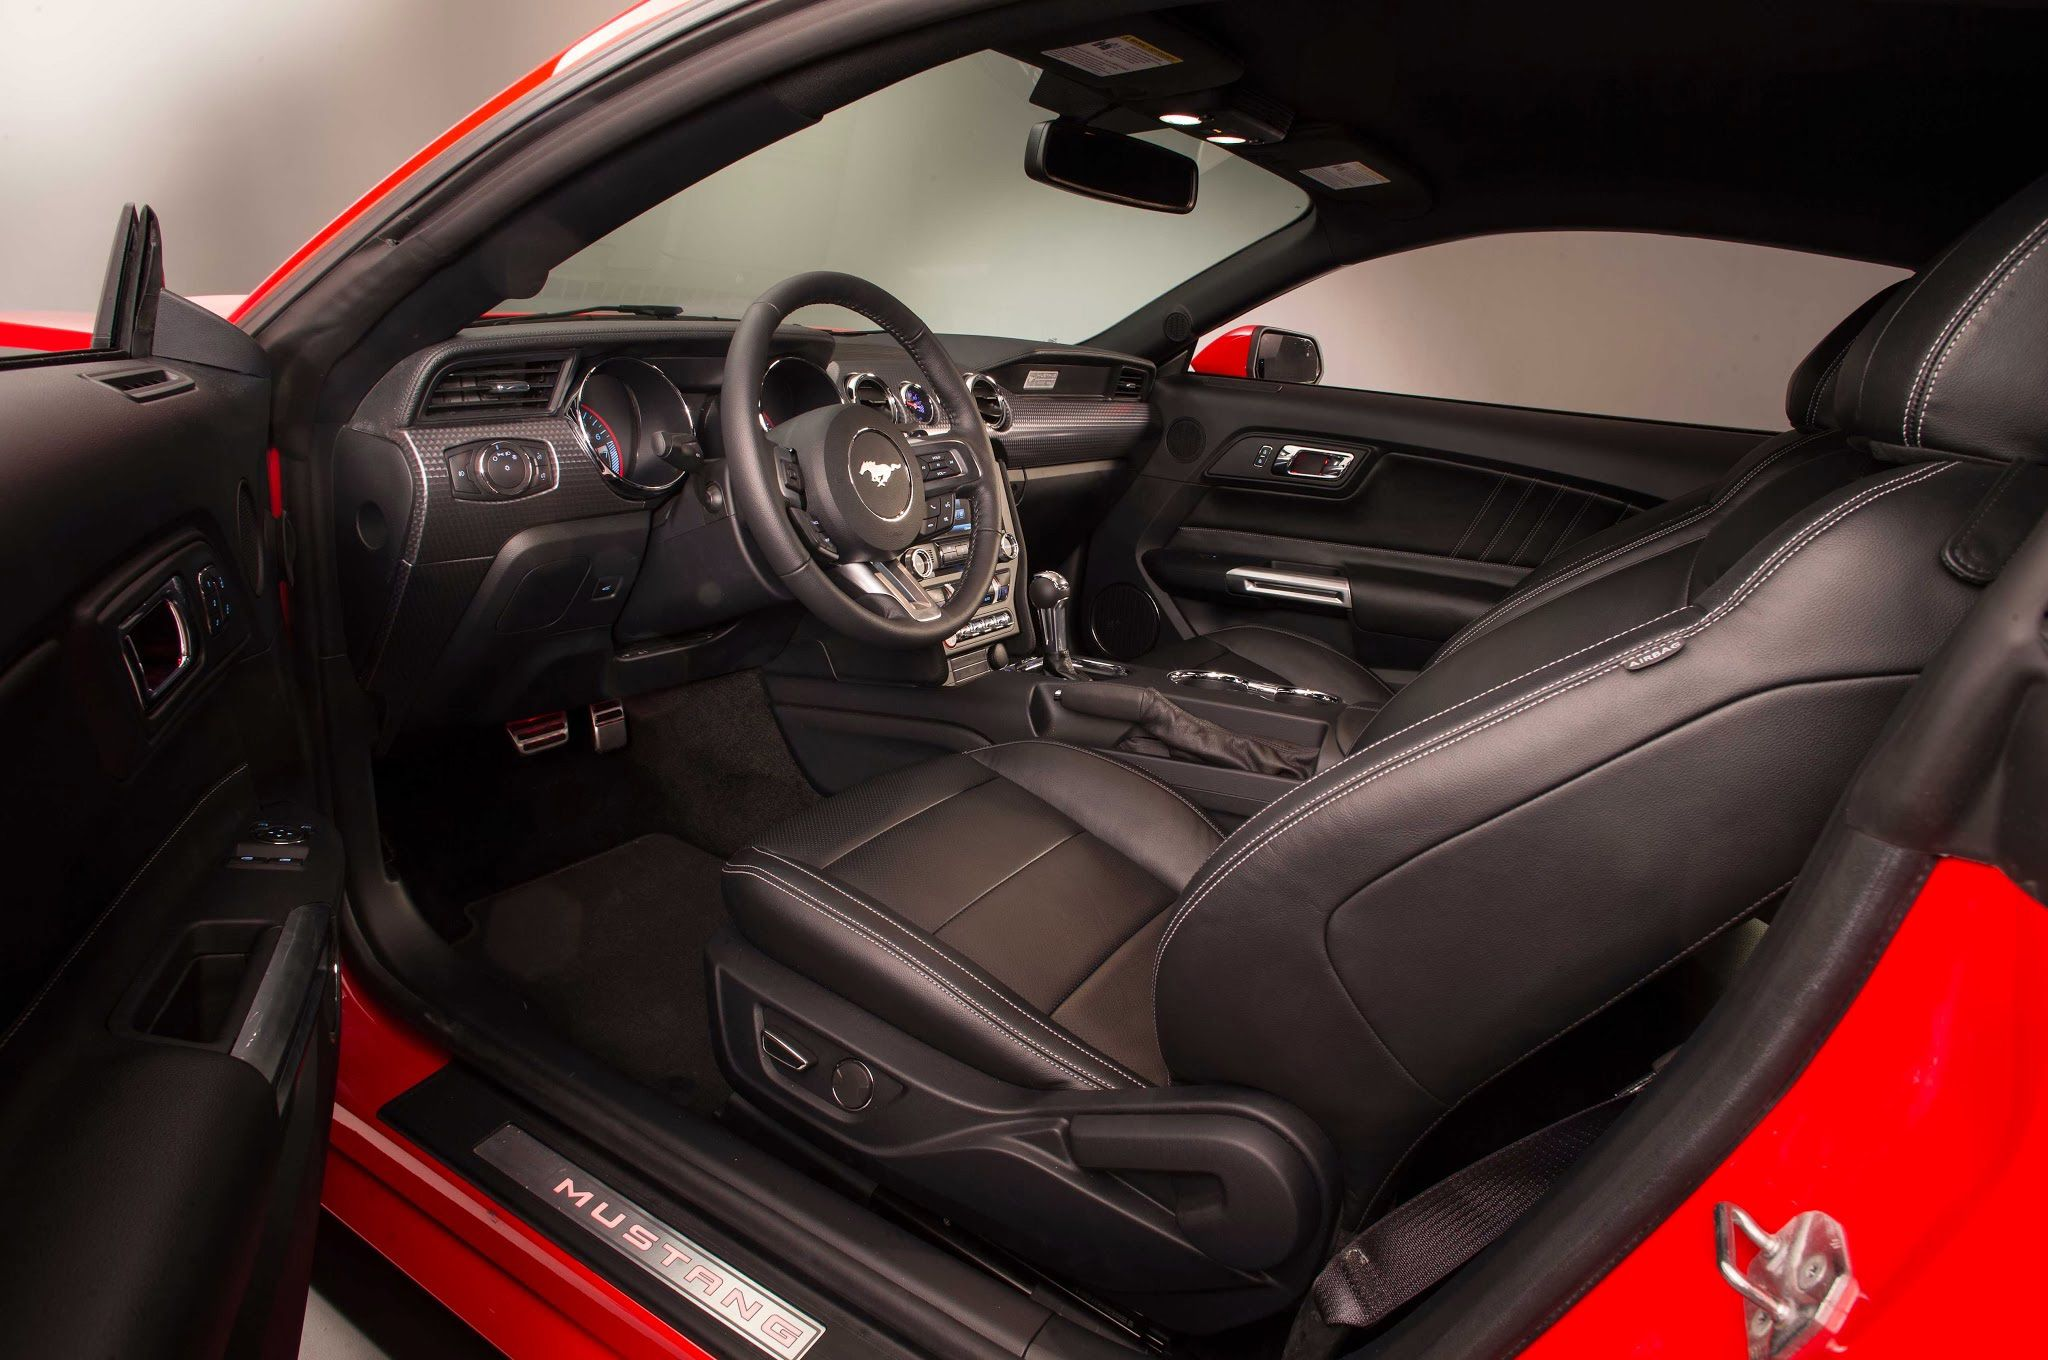 2015 Ford Mustang 5 0 Red Interior Through Driver Door Ford Mustang Pinterest 2015 Ford